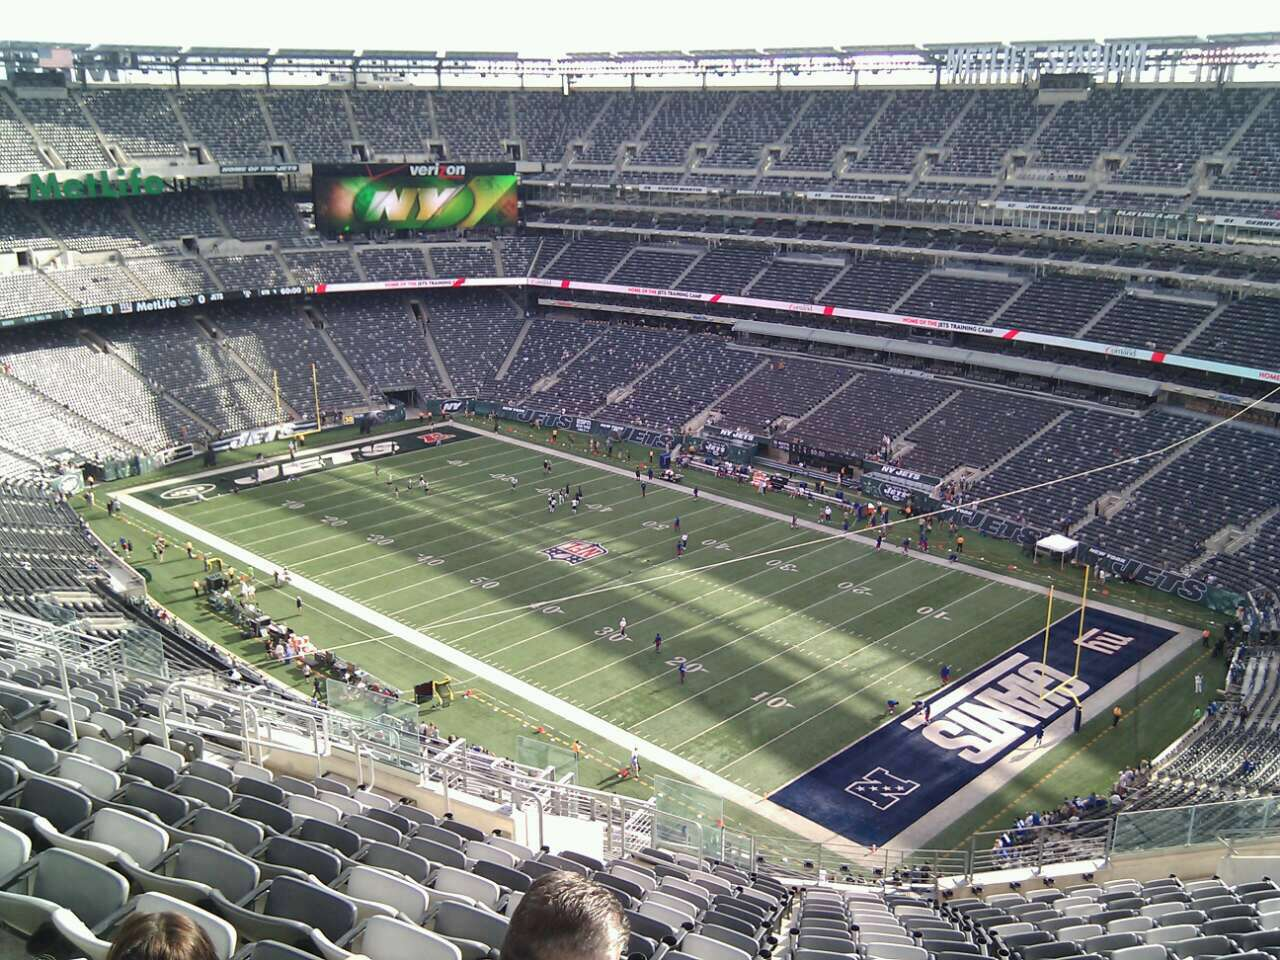 Seat view from section 307 at Metlife Stadium, home of the New York Jets